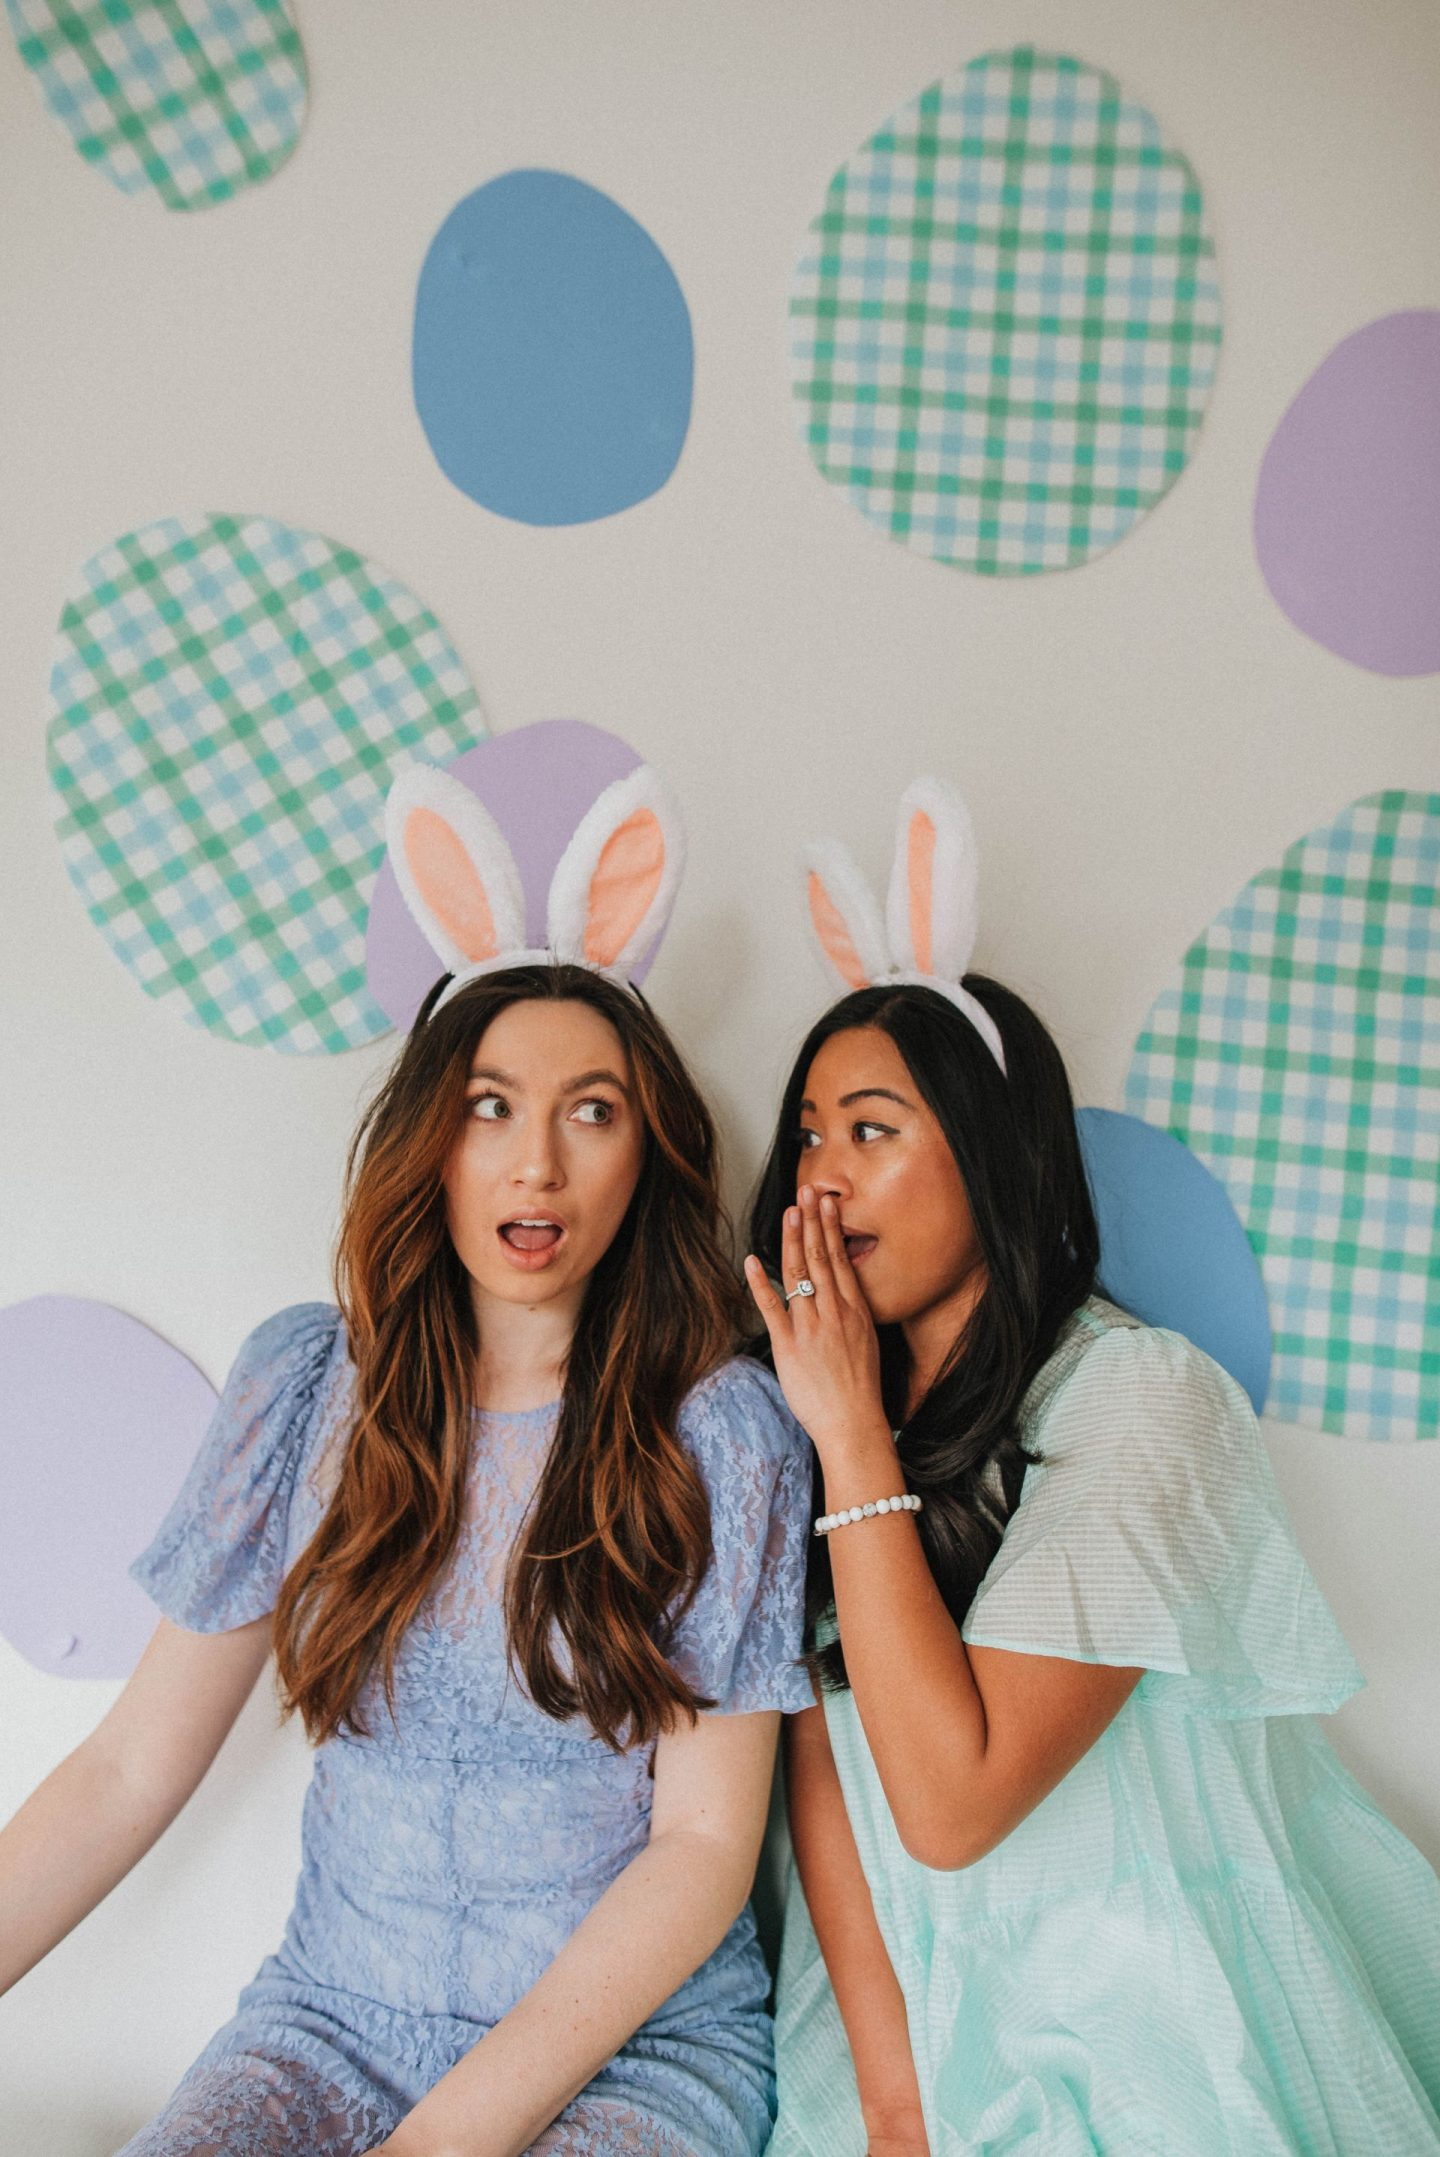 Easter bunny ears - Easter posing ideas - Easter baskets - Easter egg hunt - Easter photo shoot ideas - Easter dresses - Easter outfits - image from www.emmasedition - copyright @emmasedition